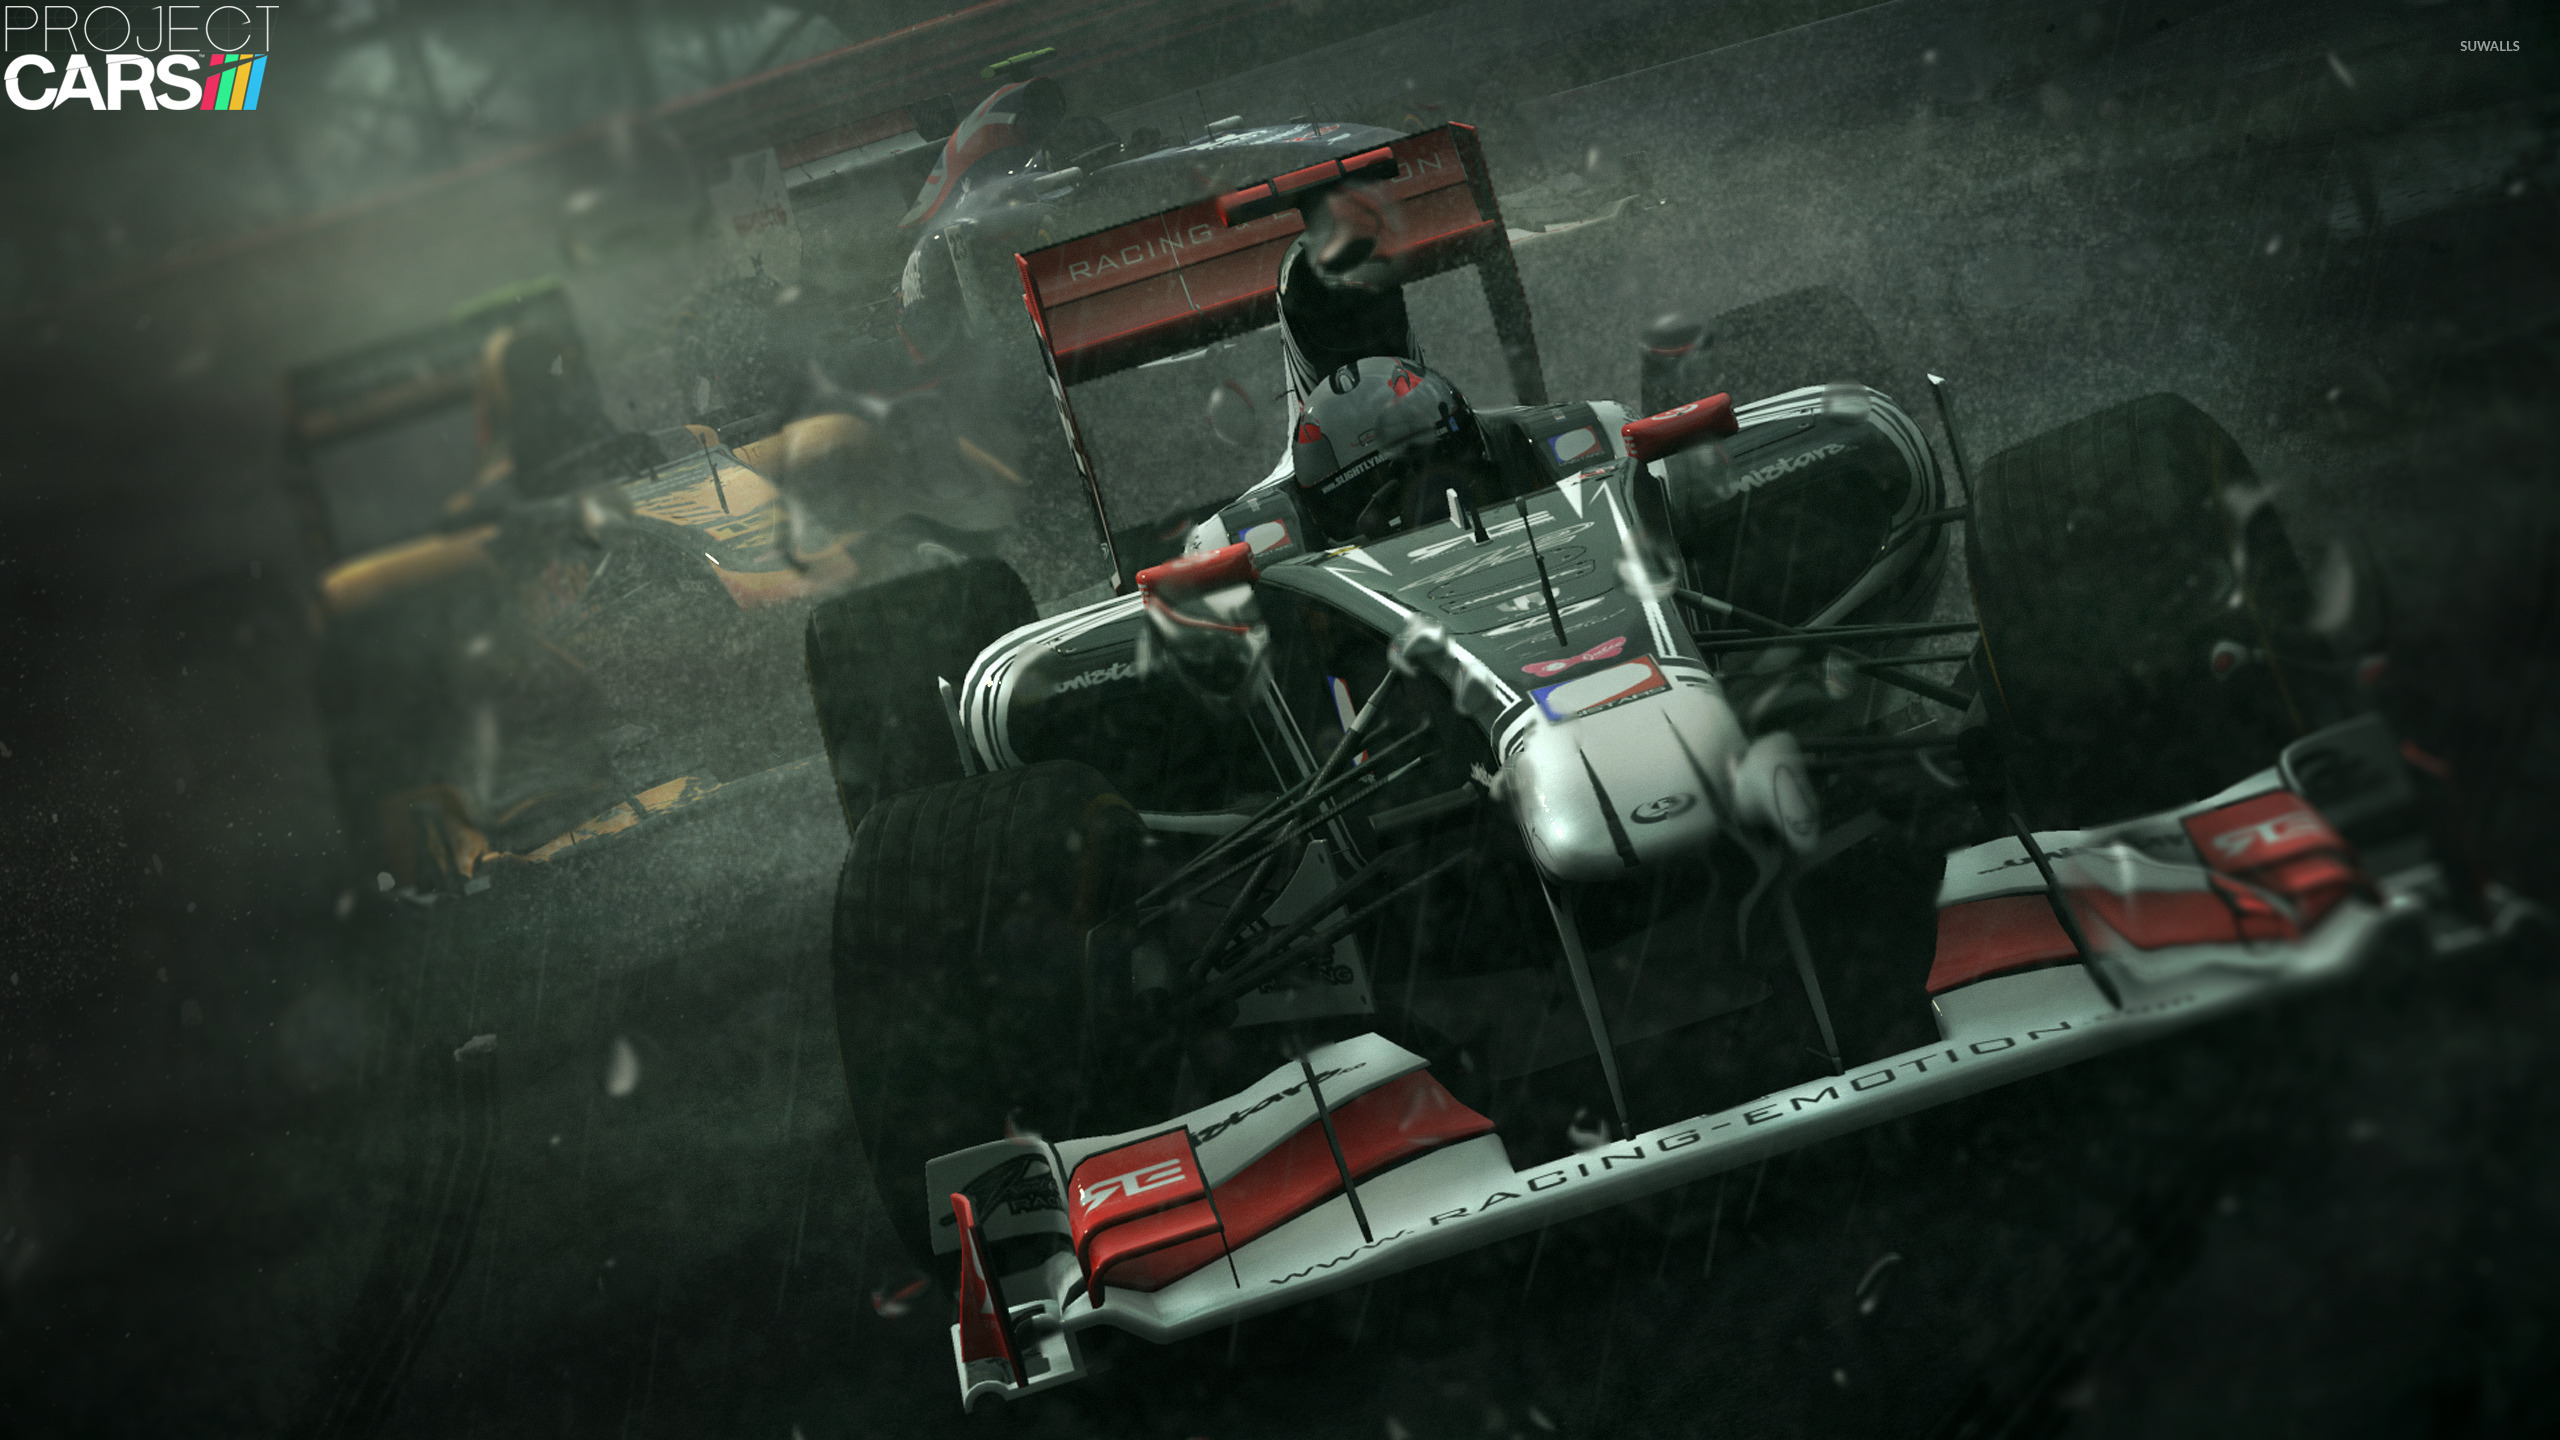 Racing Car Hd Wallpaper Free Download Project Cars 2 Wallpaper Game Wallpapers 38976